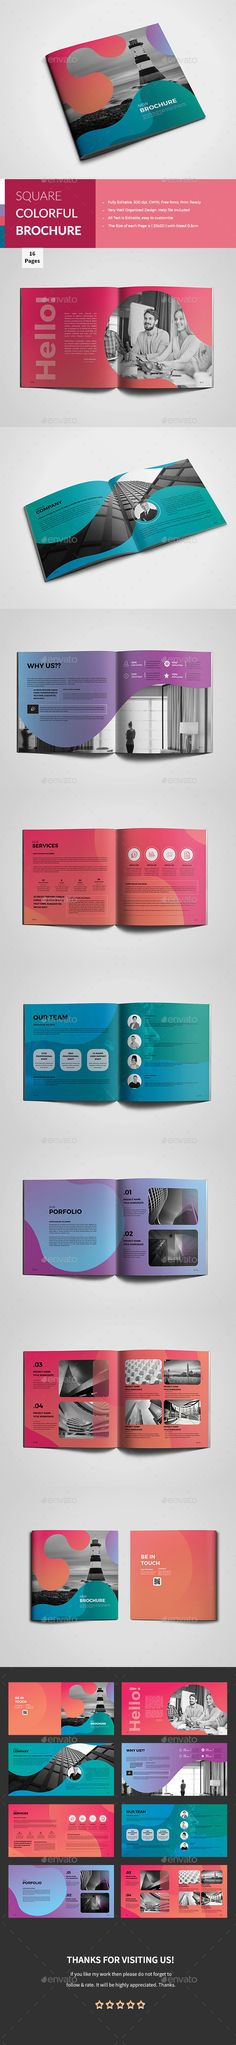 Square Colorful Corporate Brochure — InDesign INDD #corporate #catalogue • Available here ➝ https://graphicriver.net/item/square-colorful-corporate-brochure/20739339?ref=pxcr